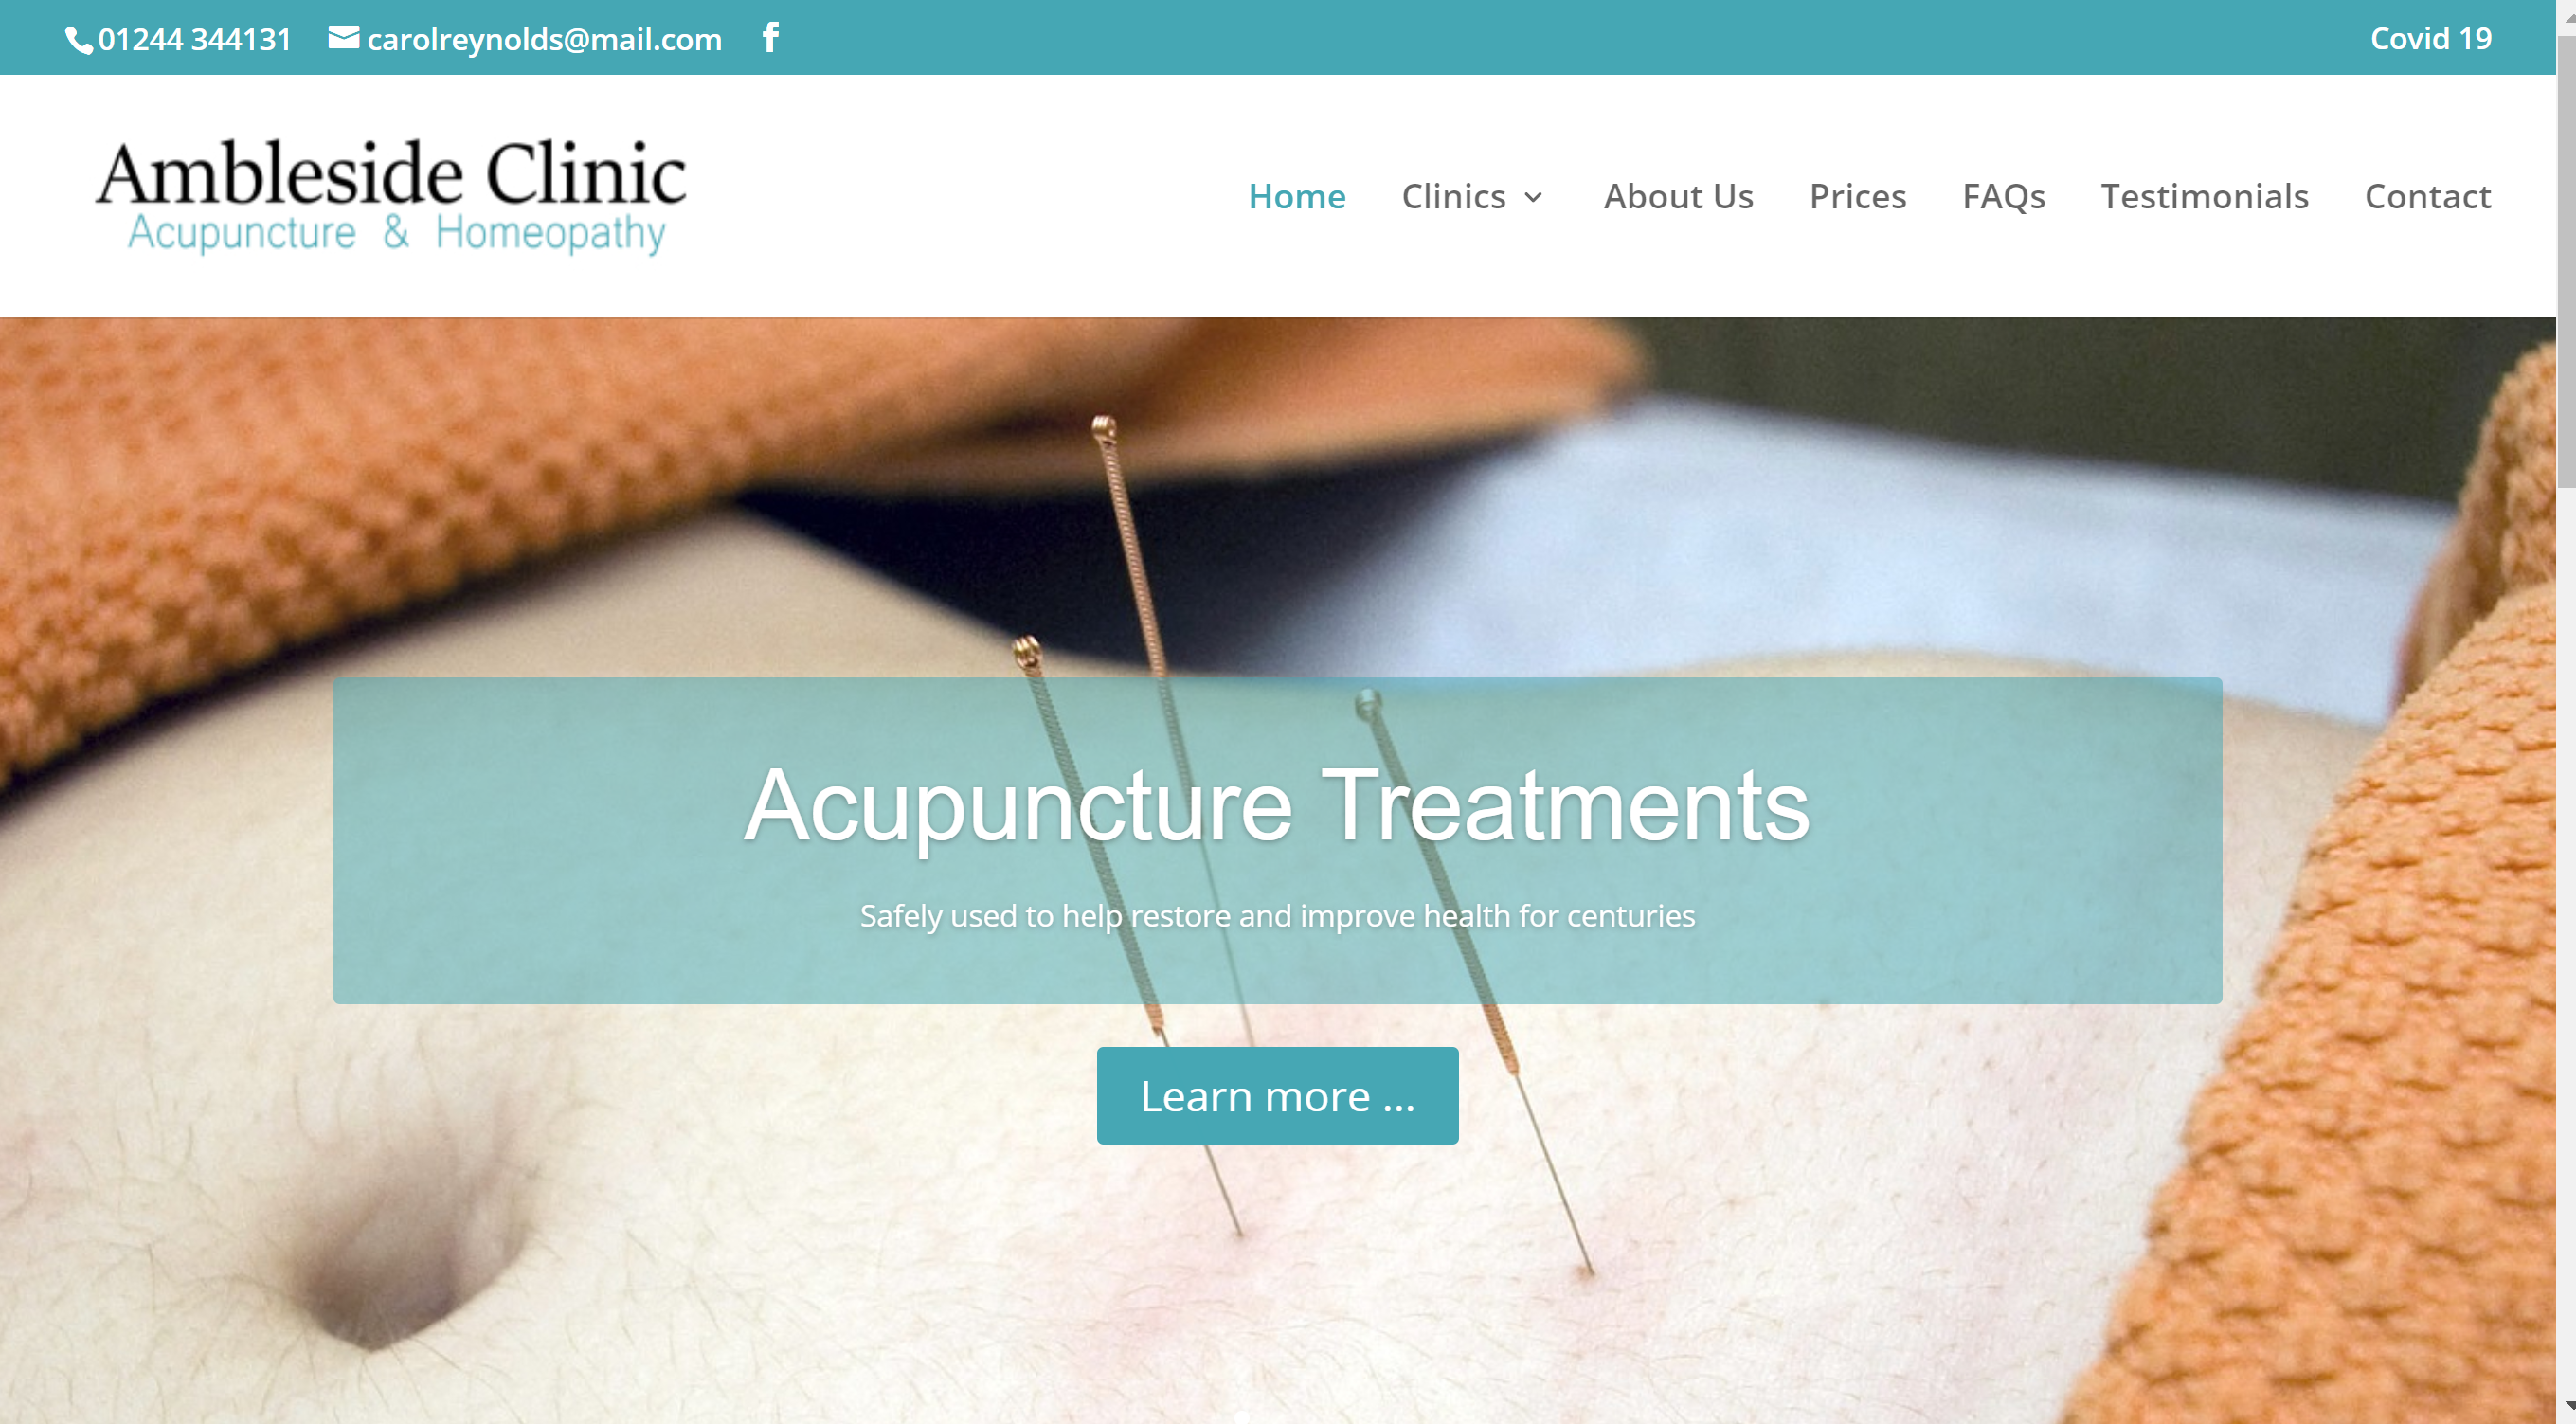 Acupuncture and Homeopathy in Chester with Ambleside Clinic